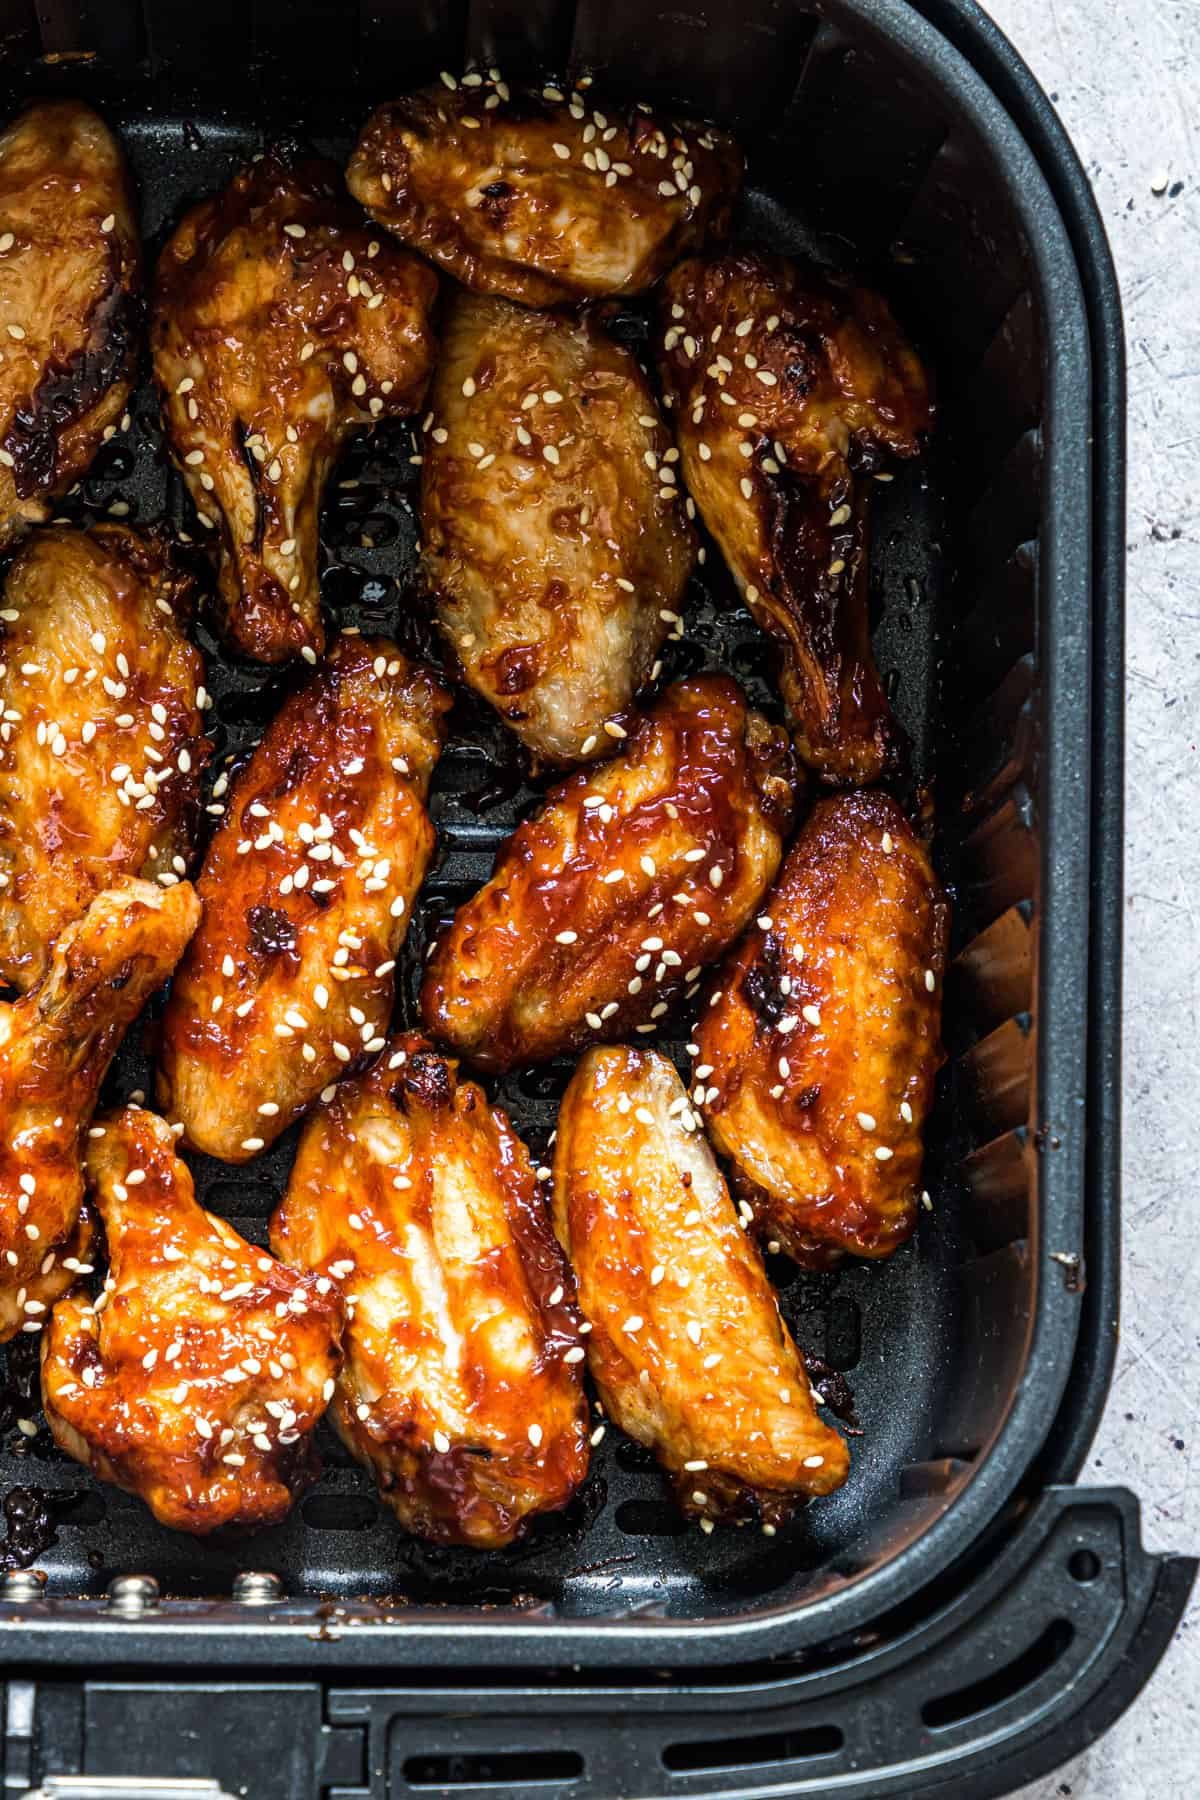 Close up of stick air fryer chicken wings in the air fryer basket